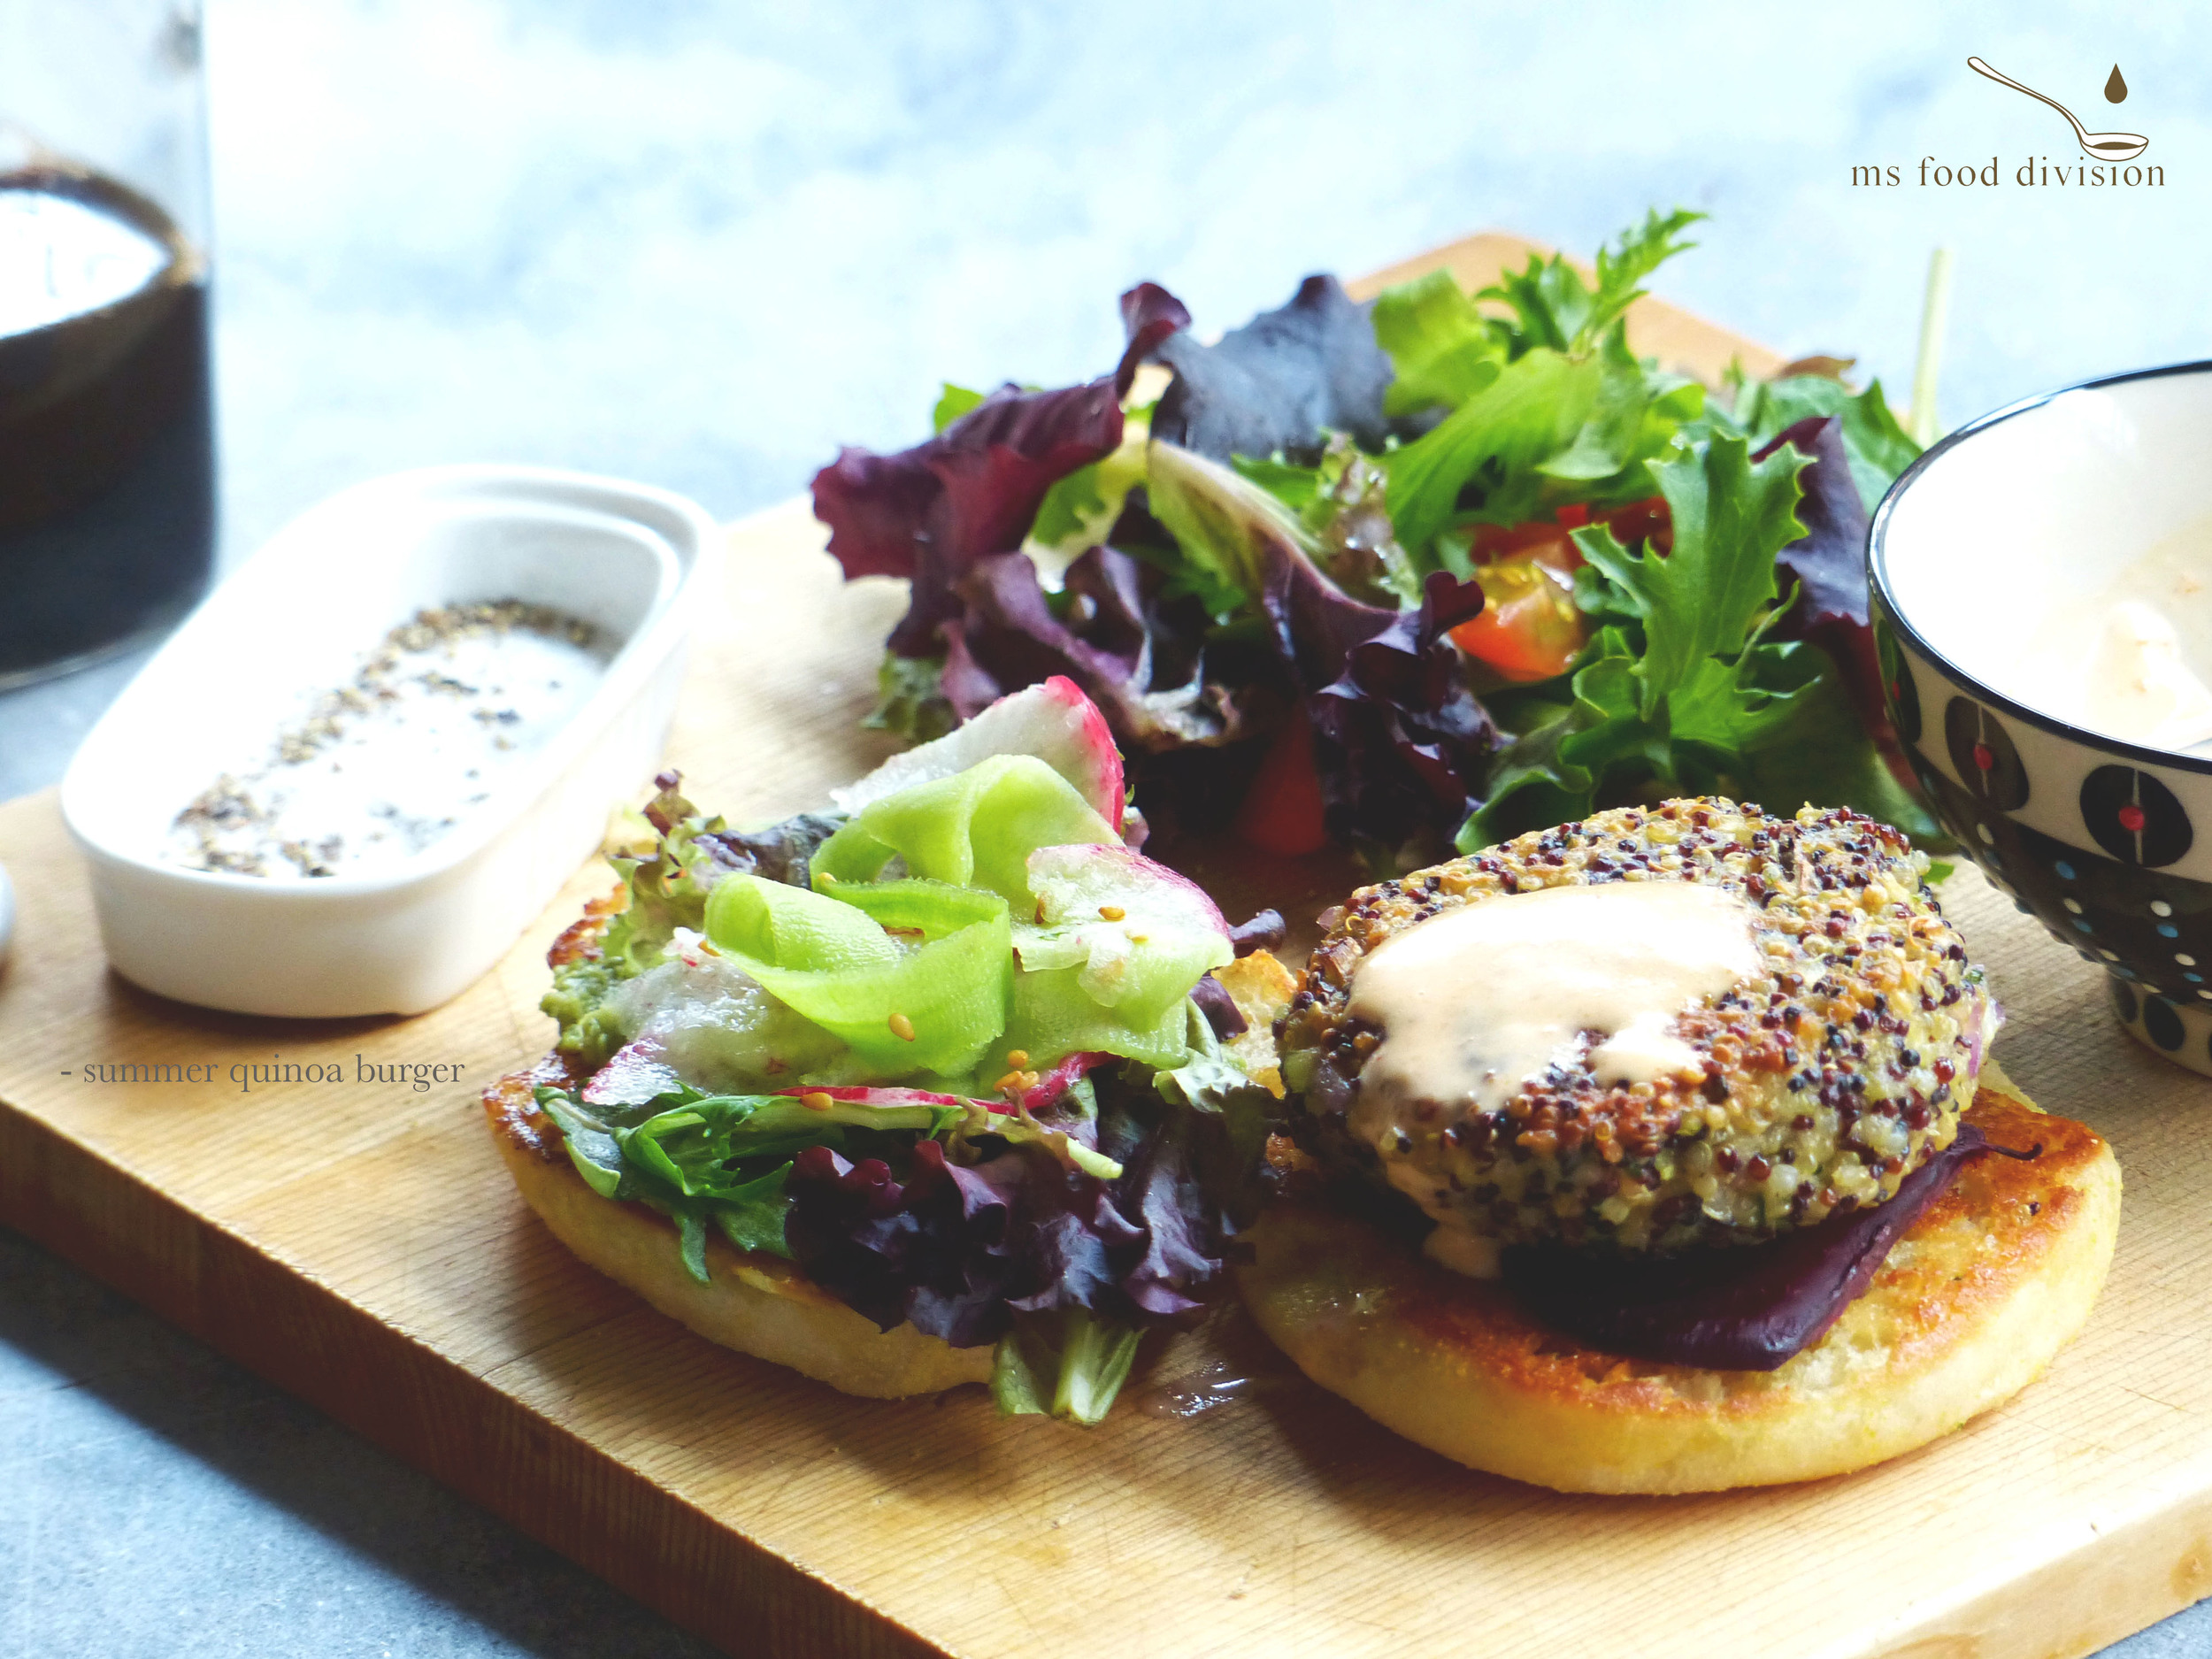 summer quinoa burger8.jpg